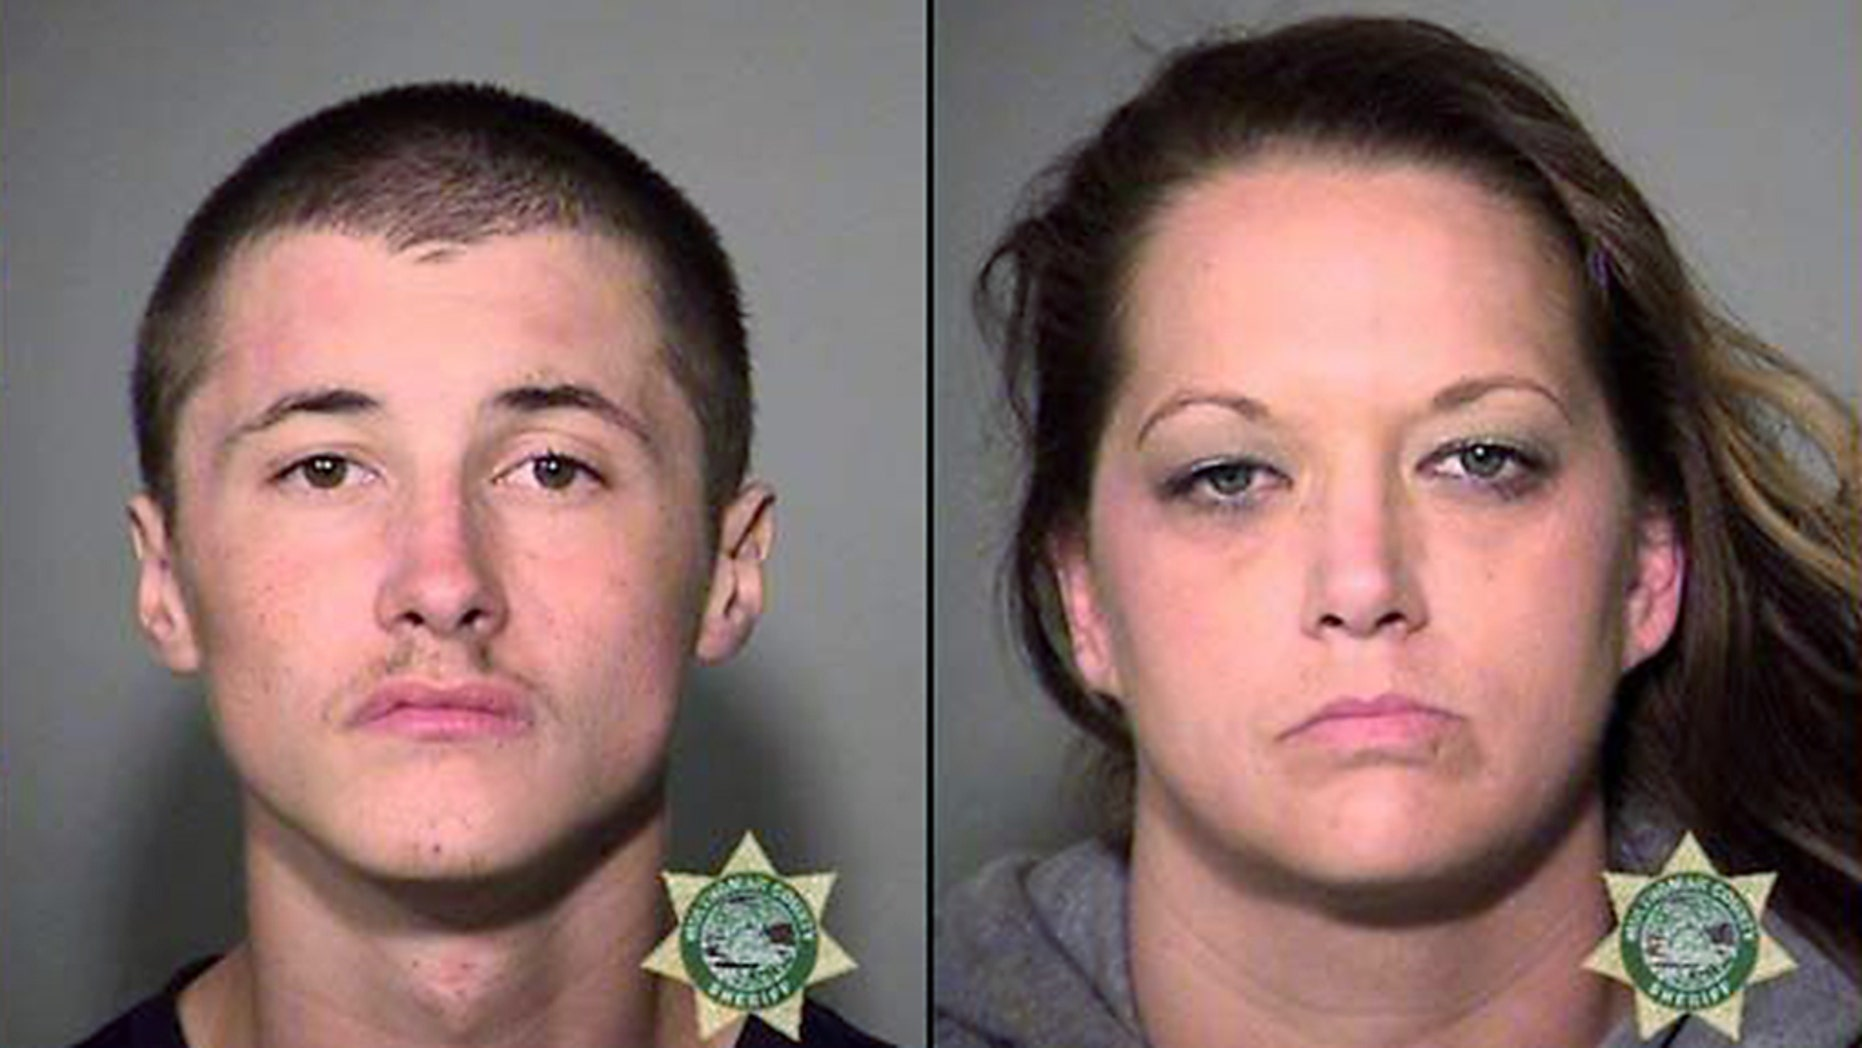 Corey Johnson, 21, was booked into the Multnomah County Jail on charges including unlawful use of a vehicle and attempt to elude. Stephanie Schramm, 38, was arrested on charges including unlawful use of a vehicle, interfering with a peace officer and possession of methamphetamine. (Gresham Police Department)